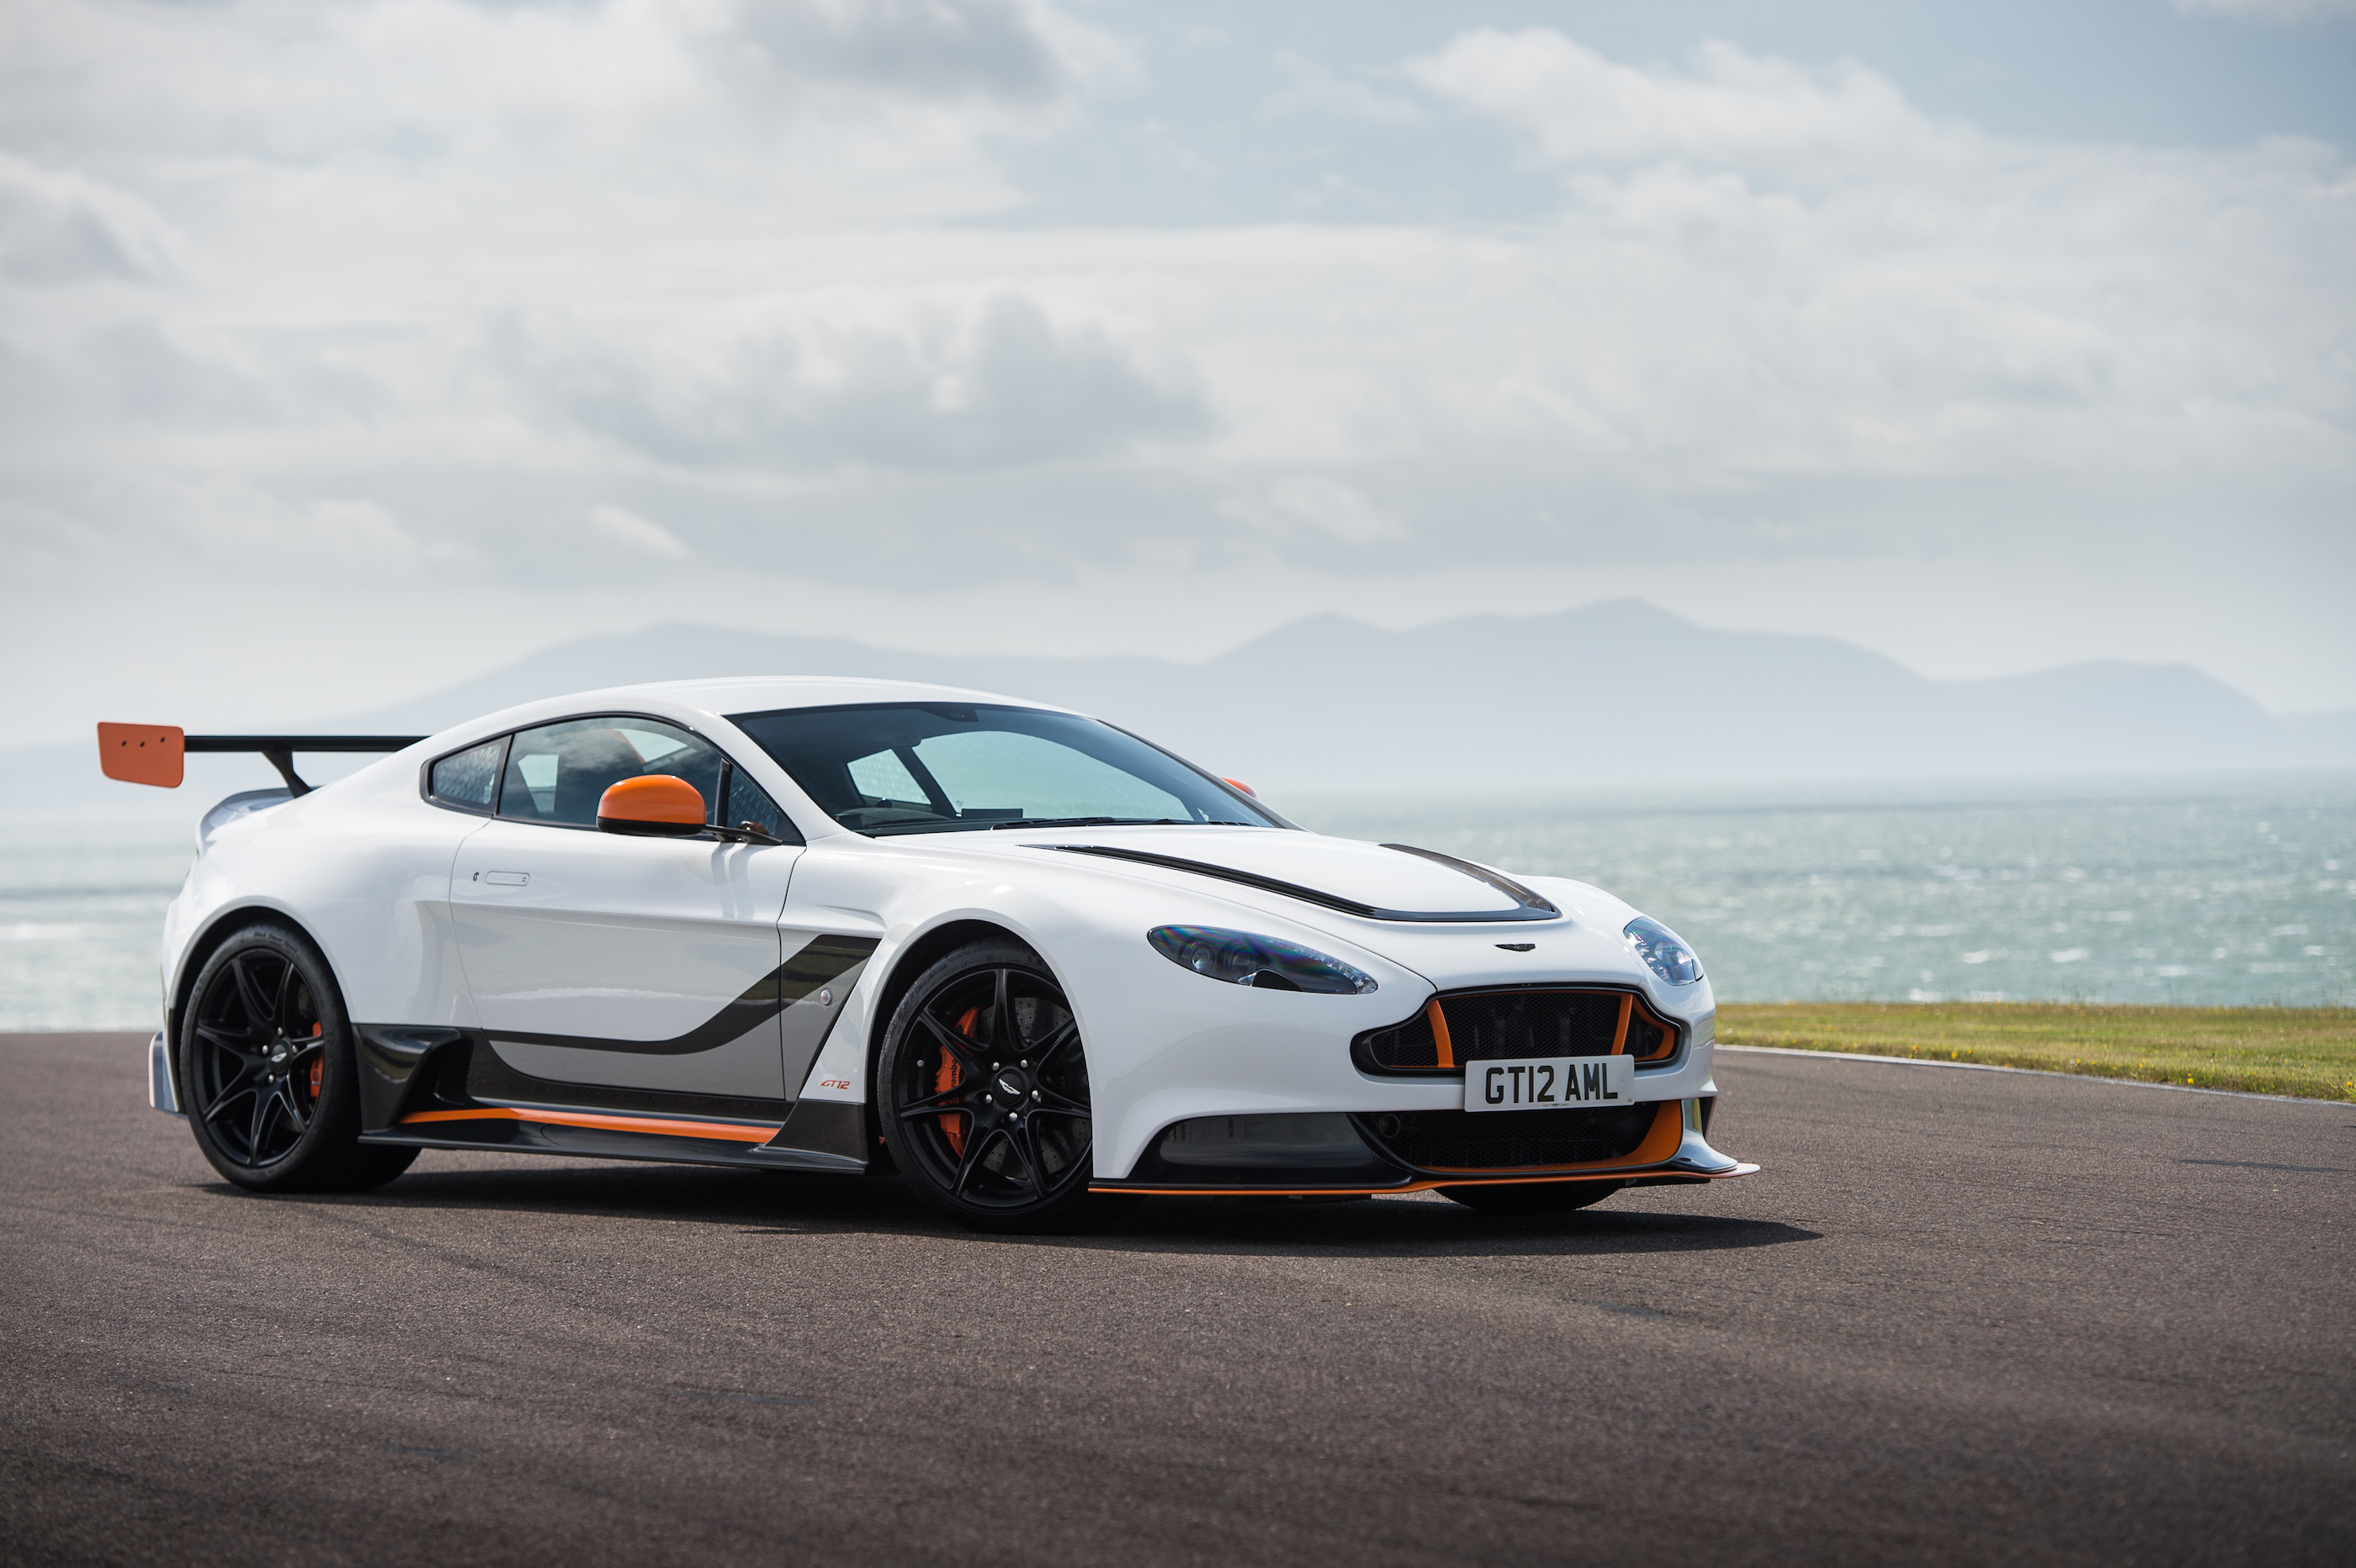 Aston Martin Vantage Gt12 Review Prices Specs And 0 60 Time Evo